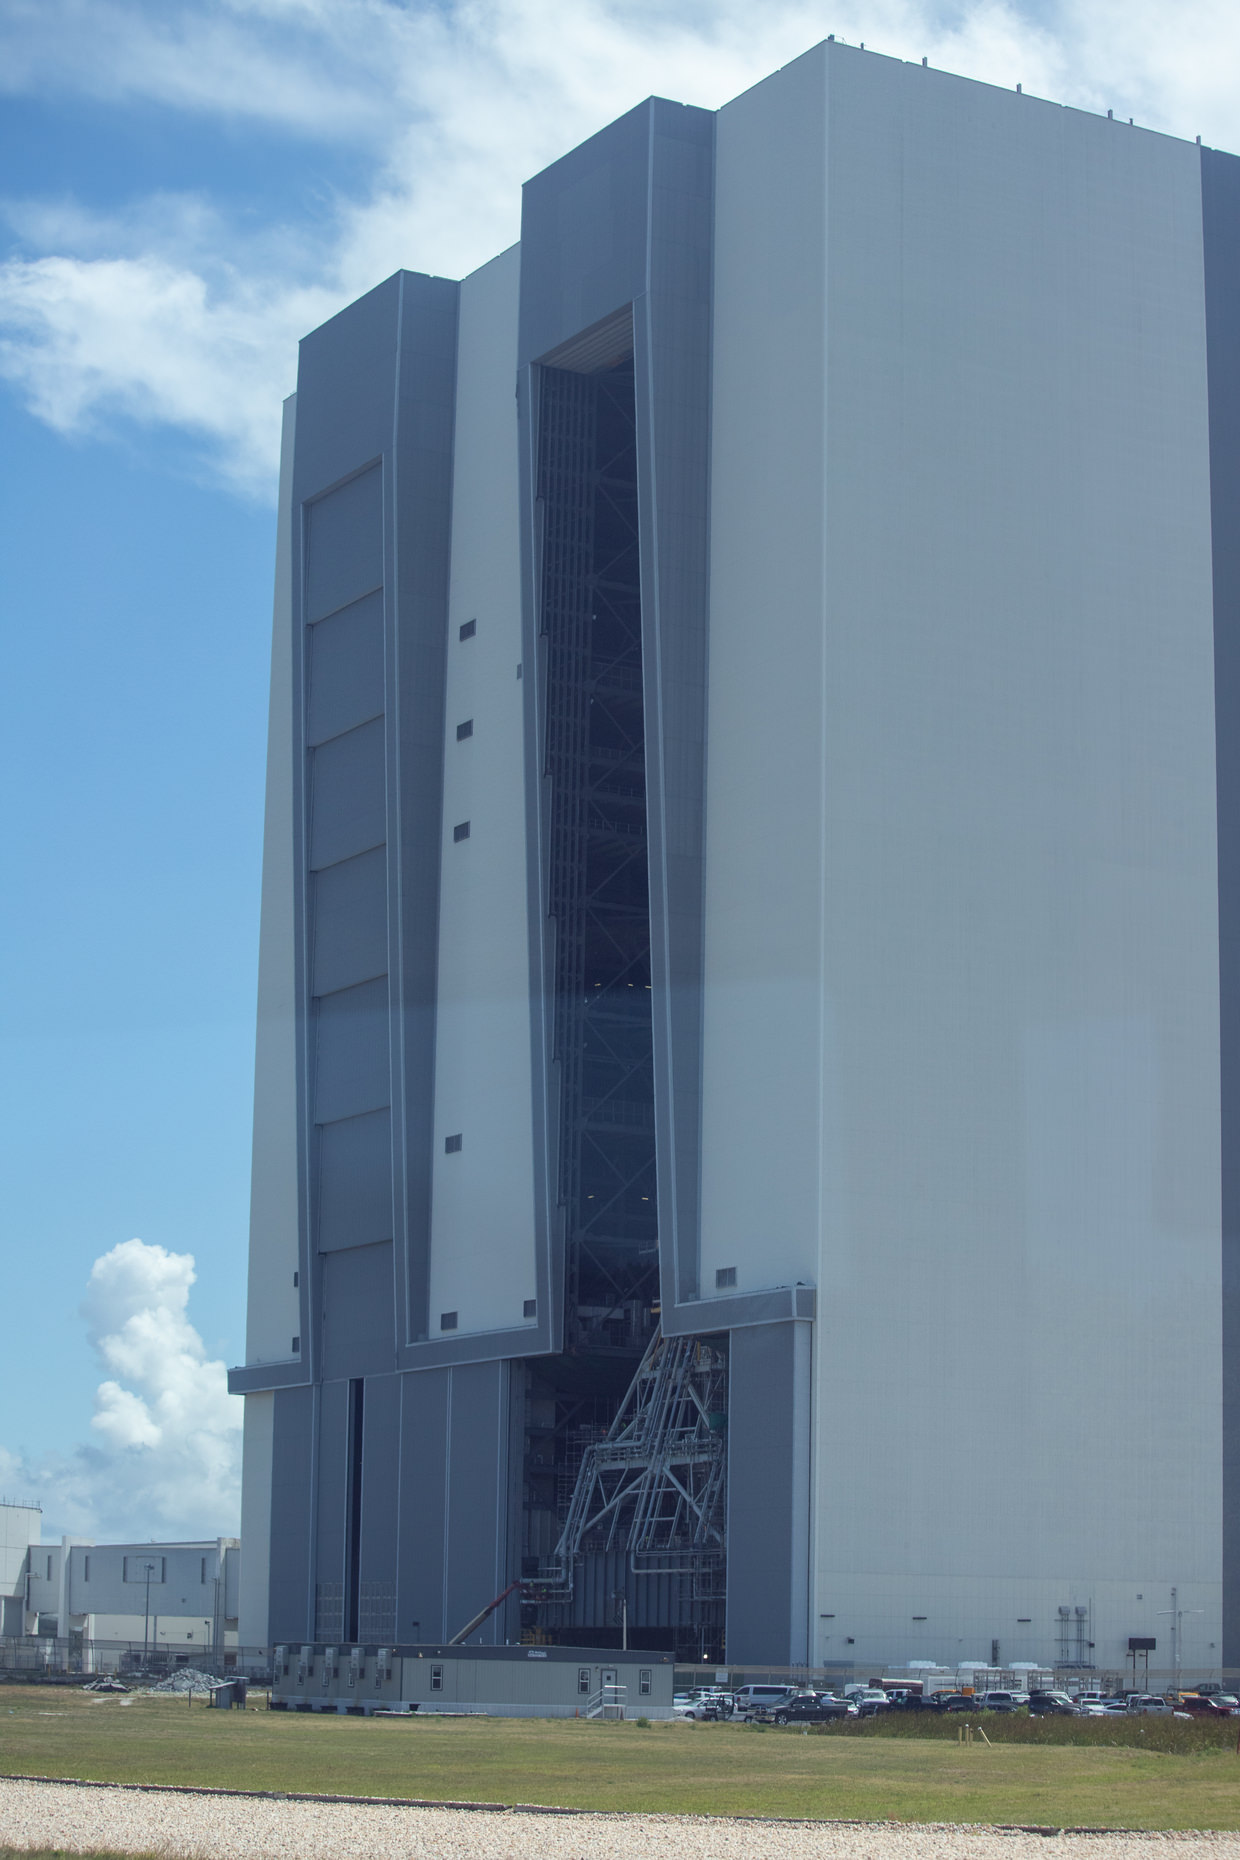 The back of the VAB, where the space shuttles exited before launch